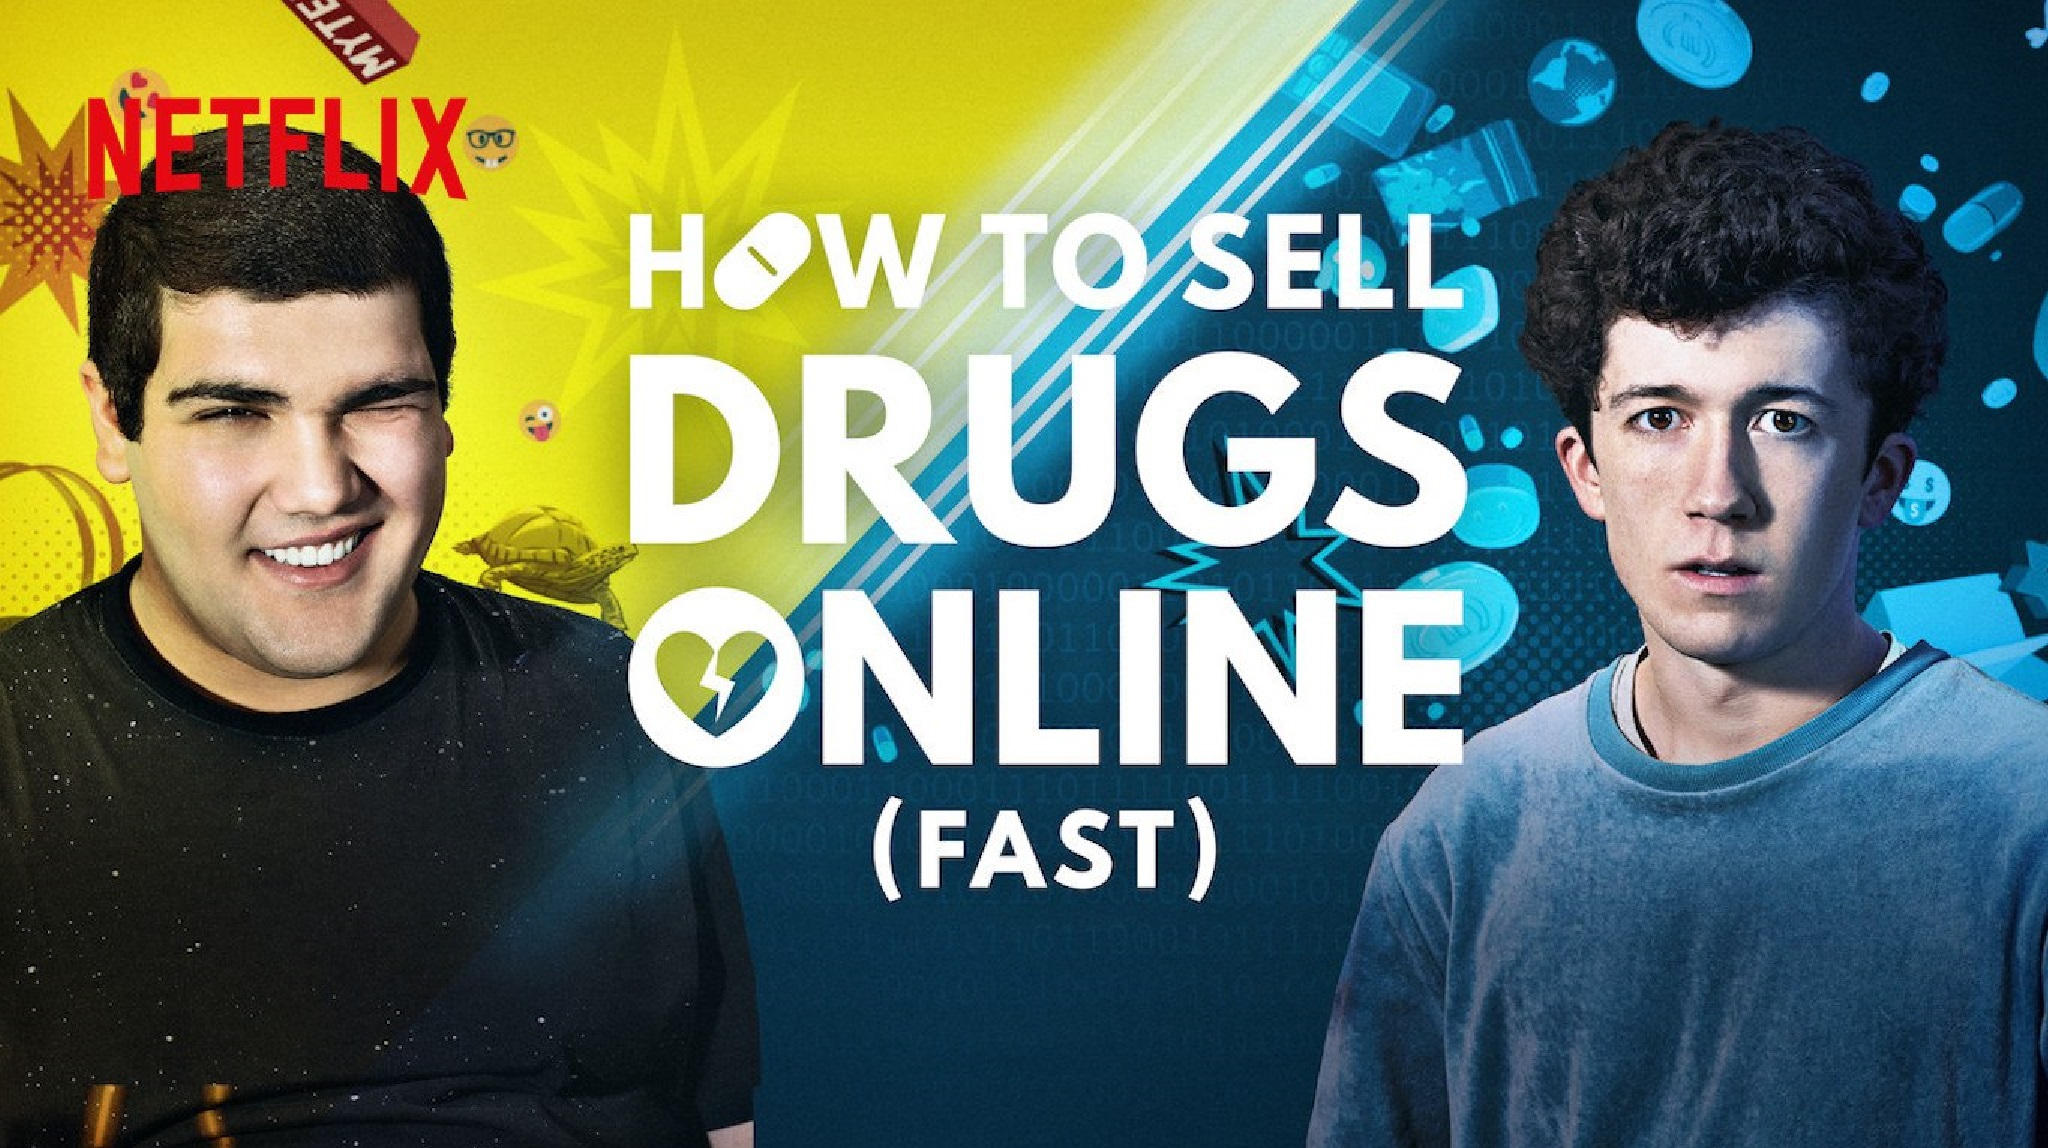 how-to-sell-drugs-online-poster